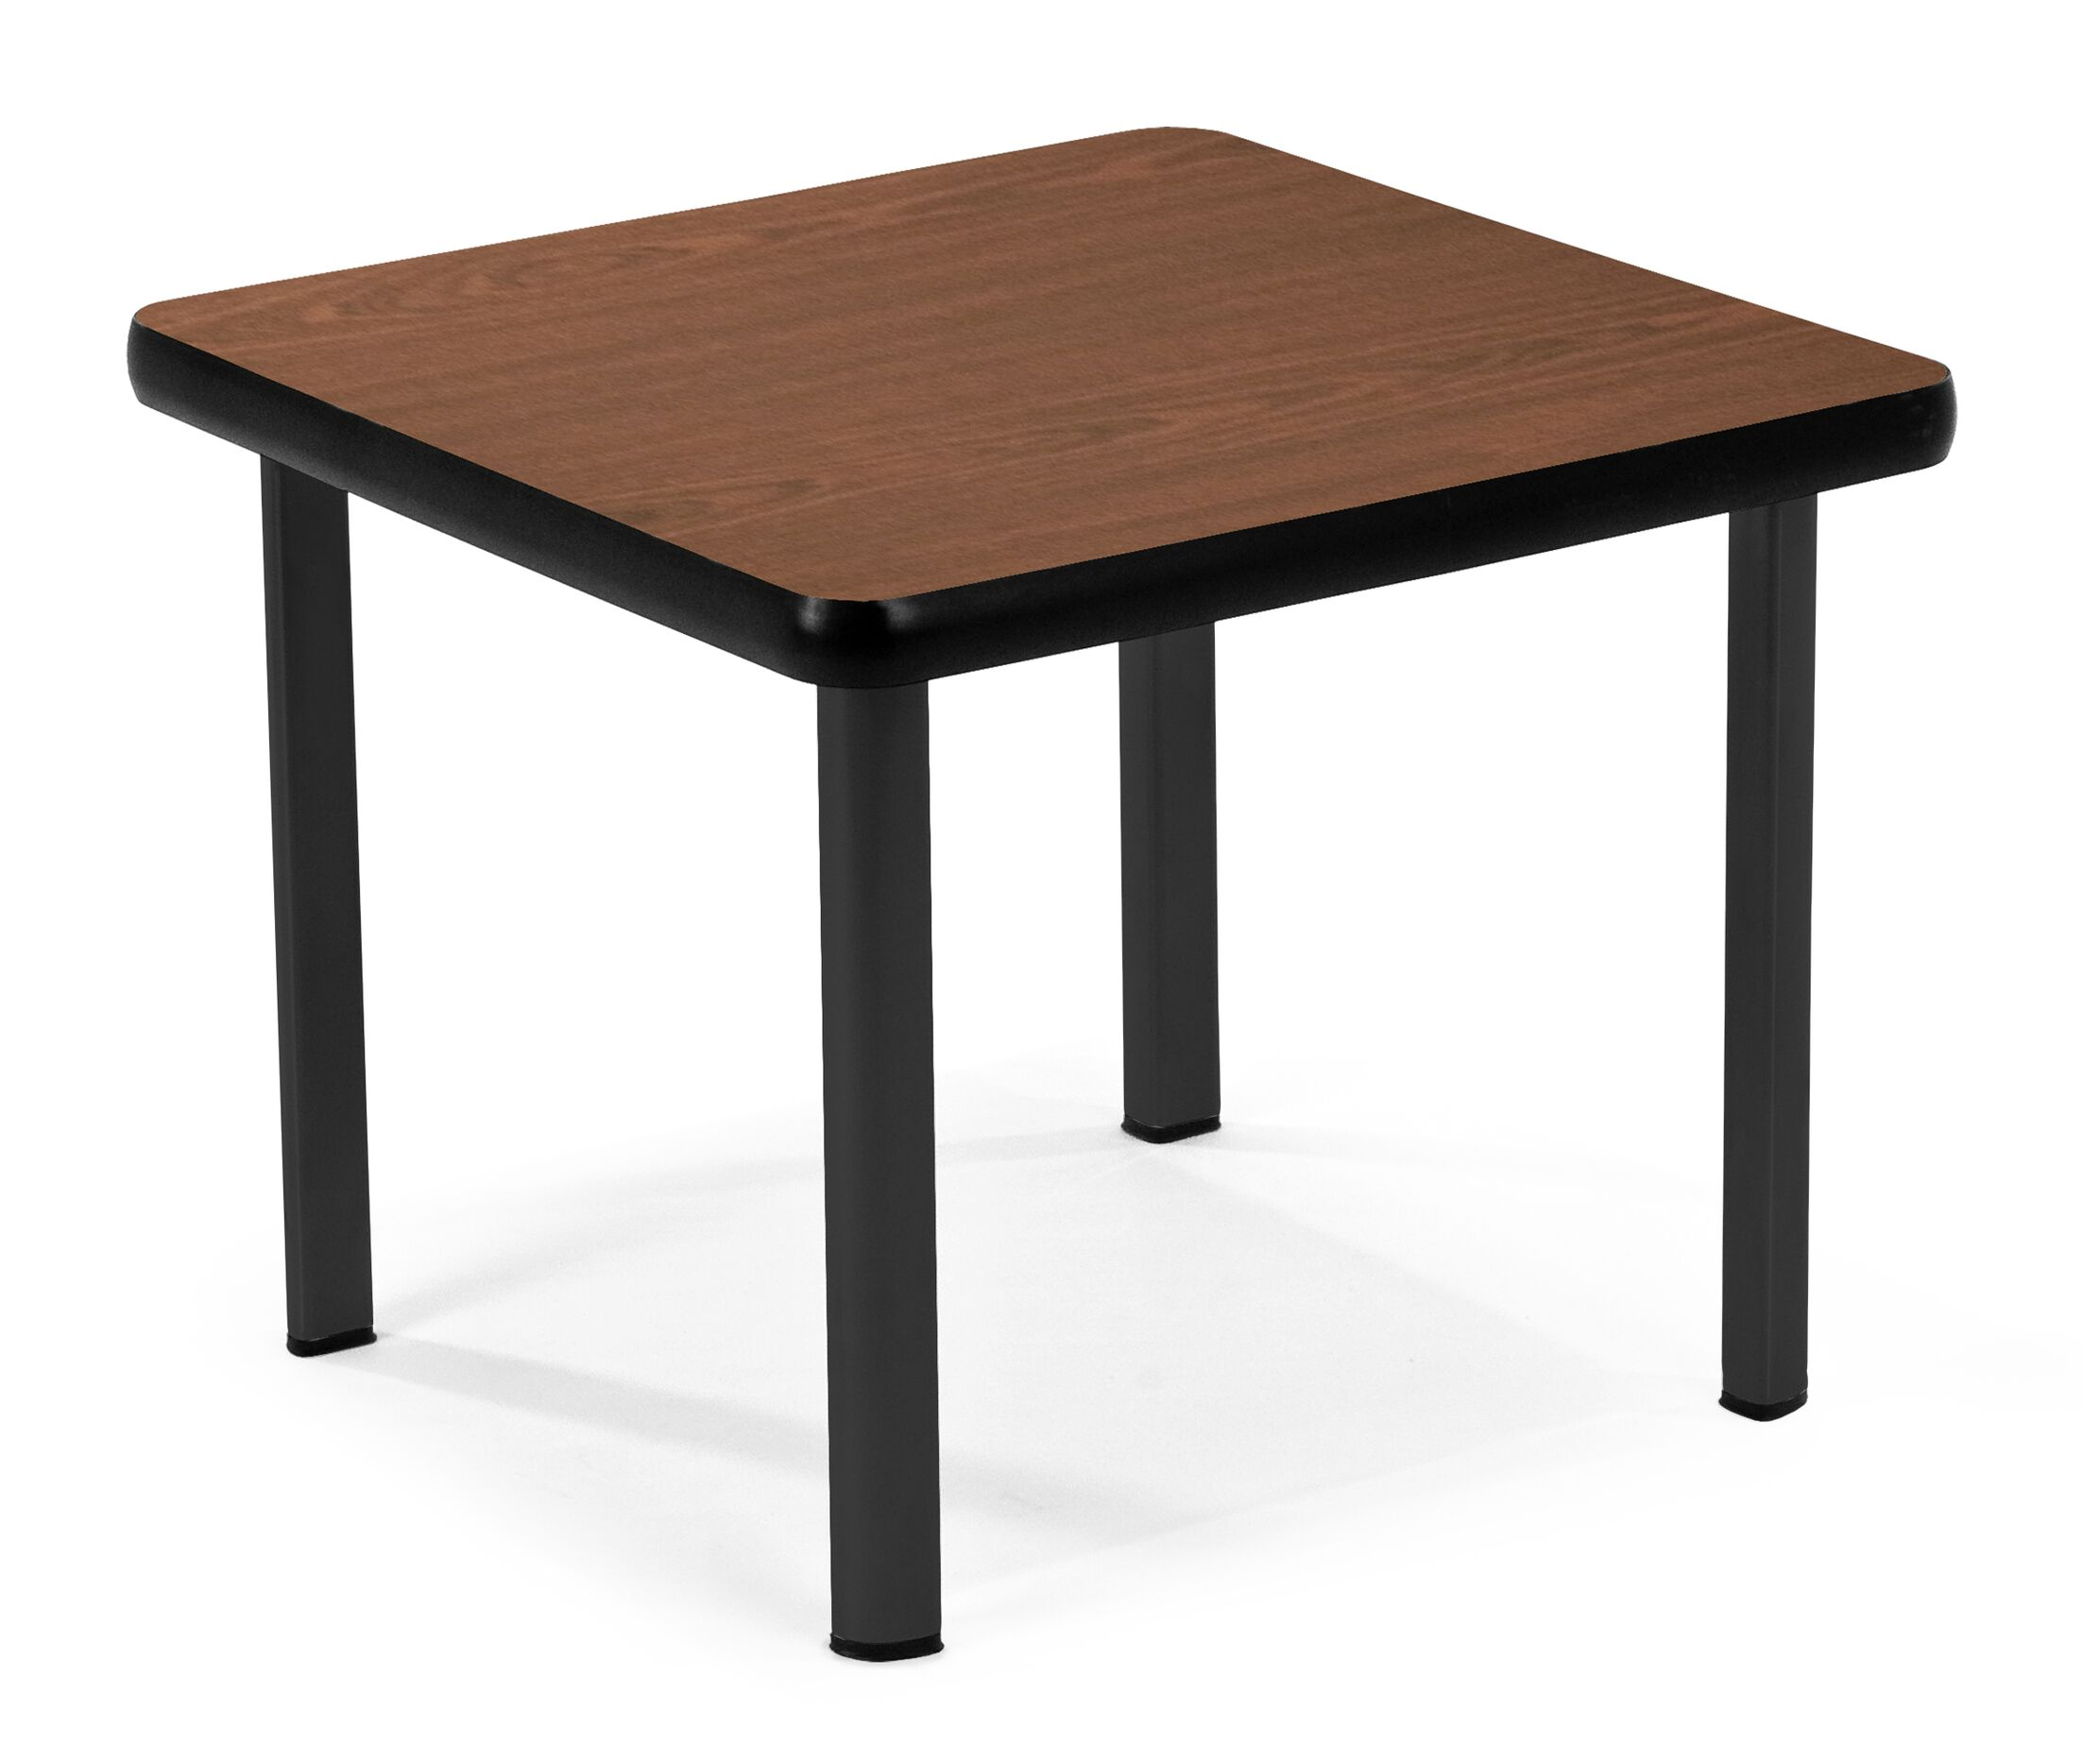 End Table Base Color: Black, Top Color: Mahogany